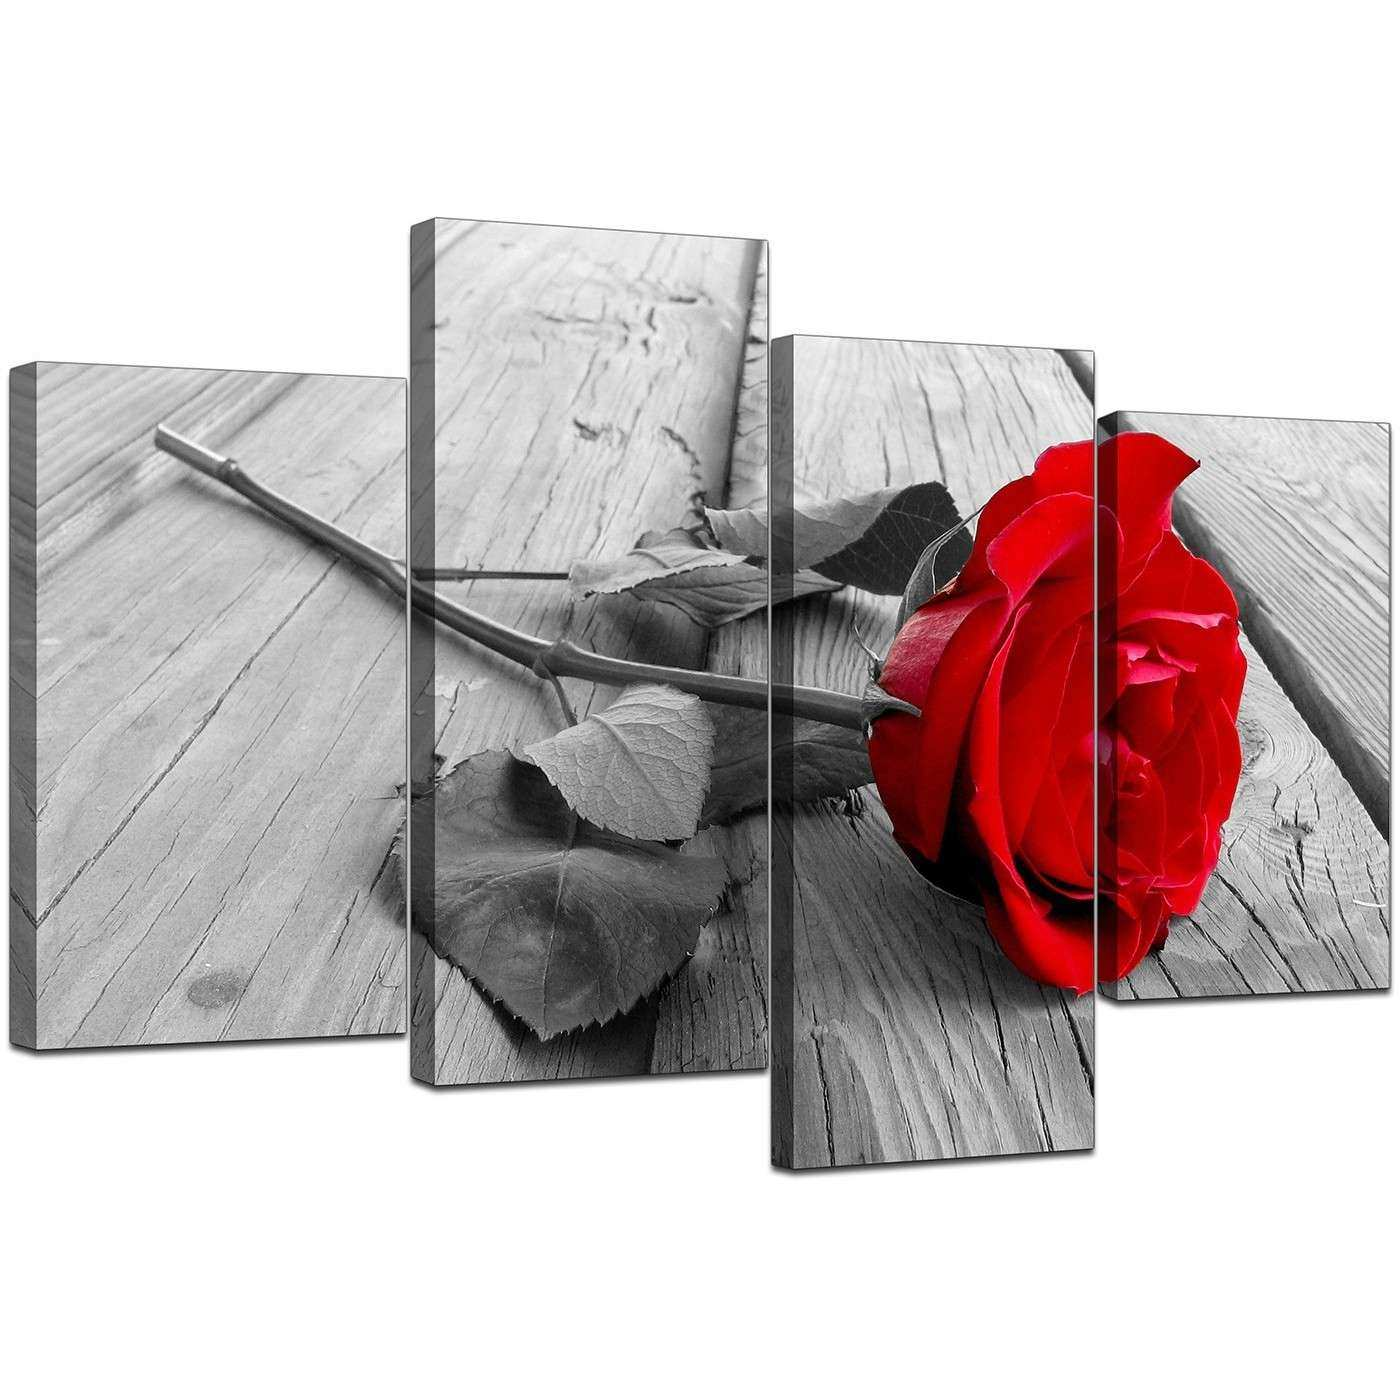 Floral Canvas Wall Art in Red Black and White For Living